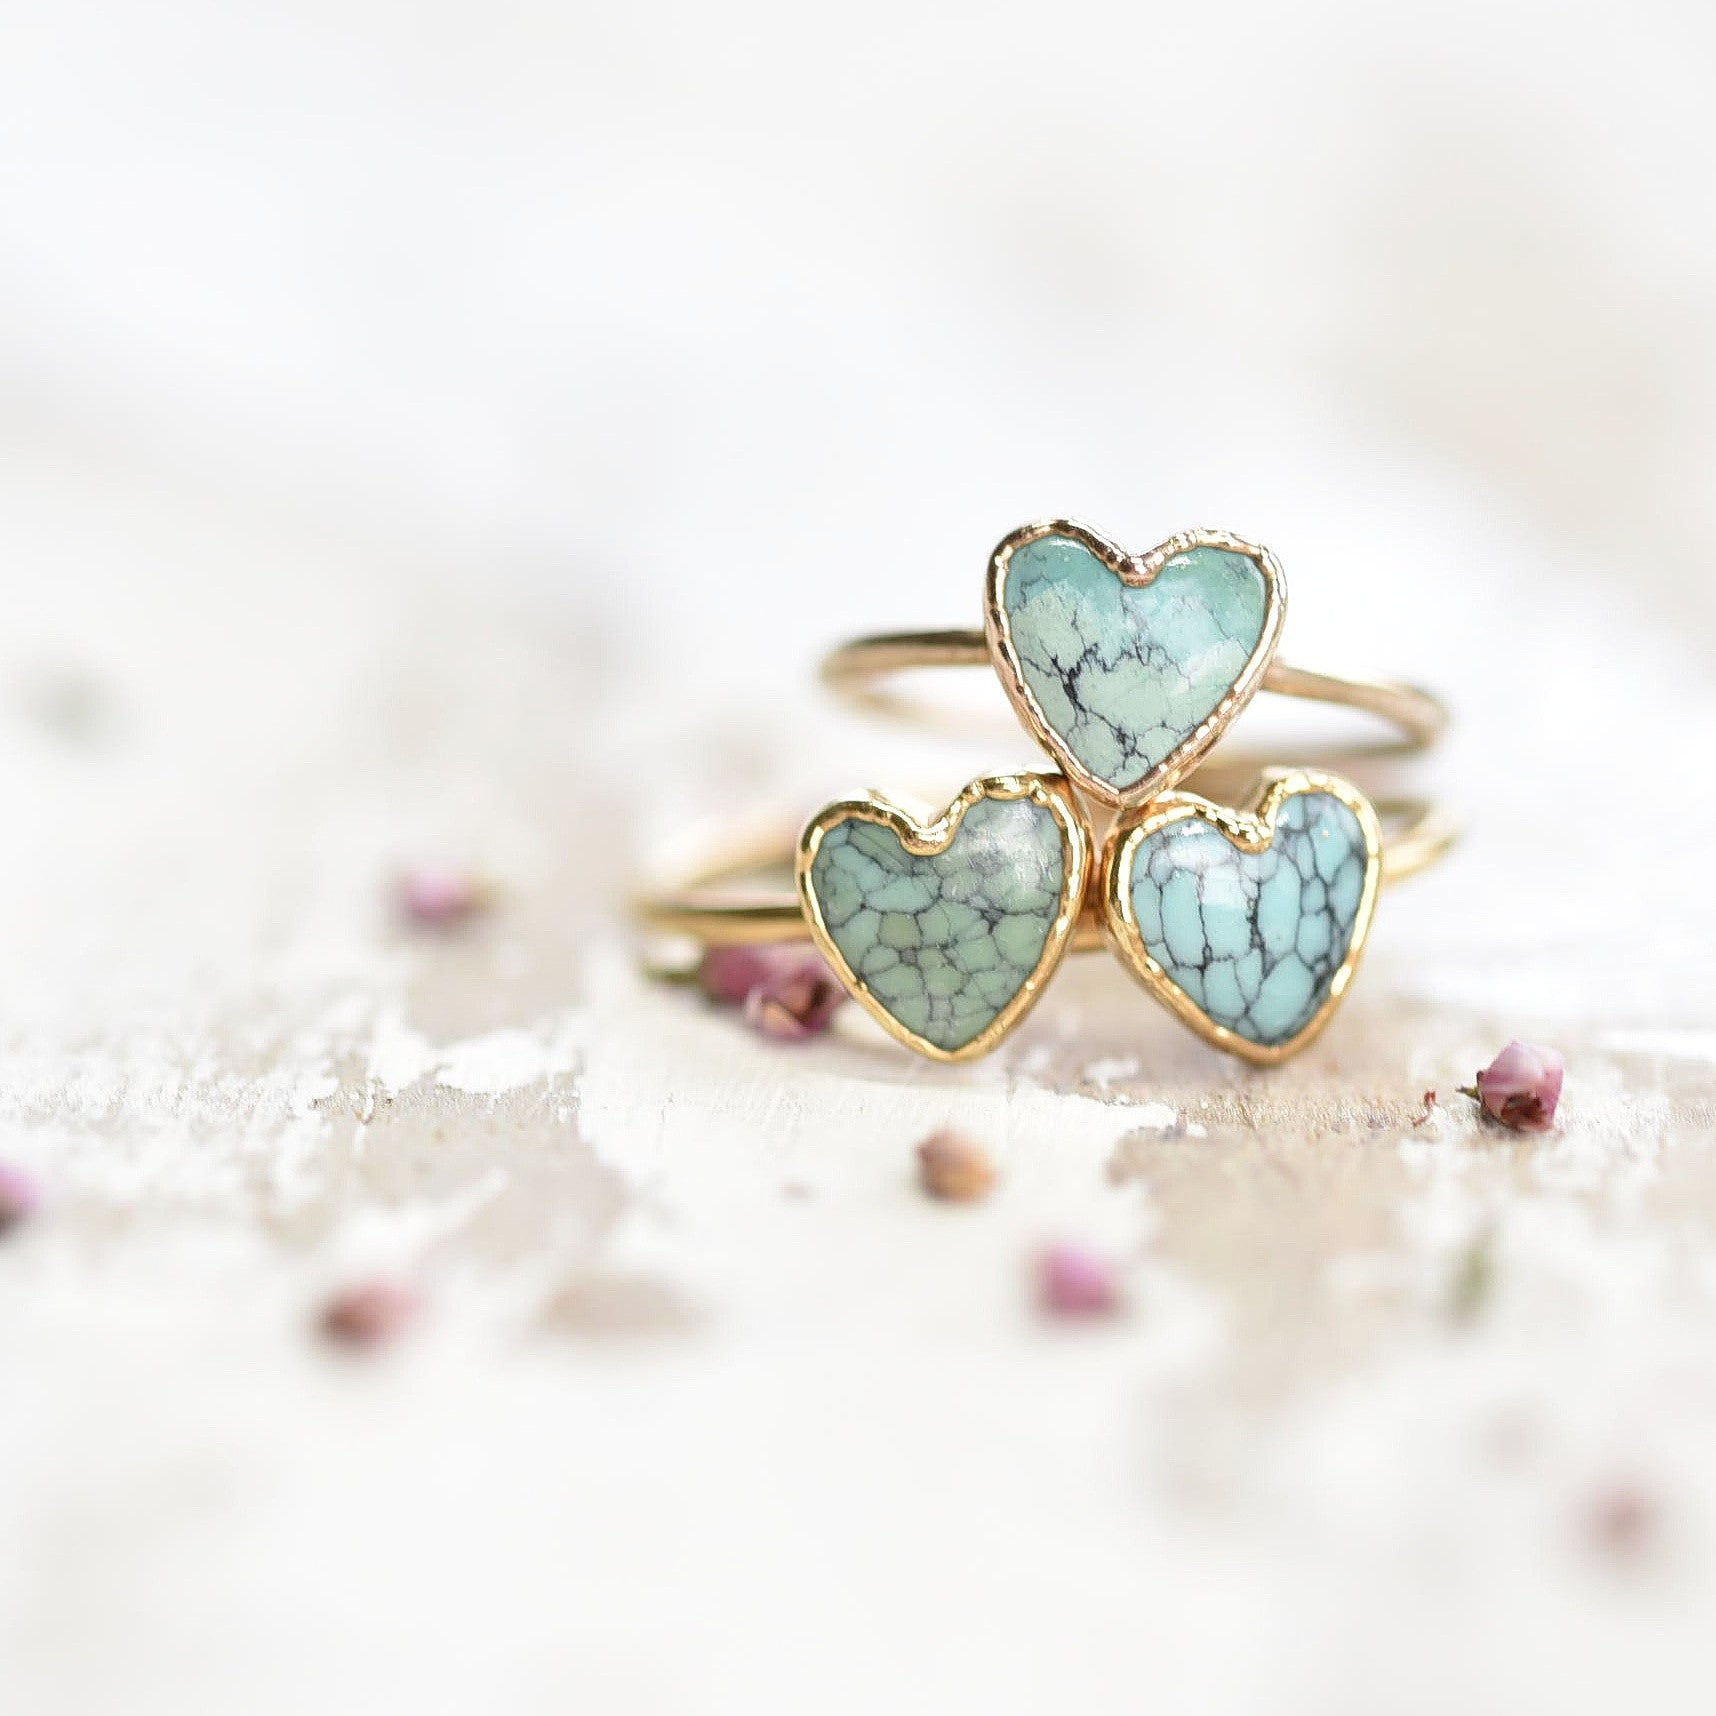 PLATED HEART SHAPED TURQUOISE RING IN GOLD